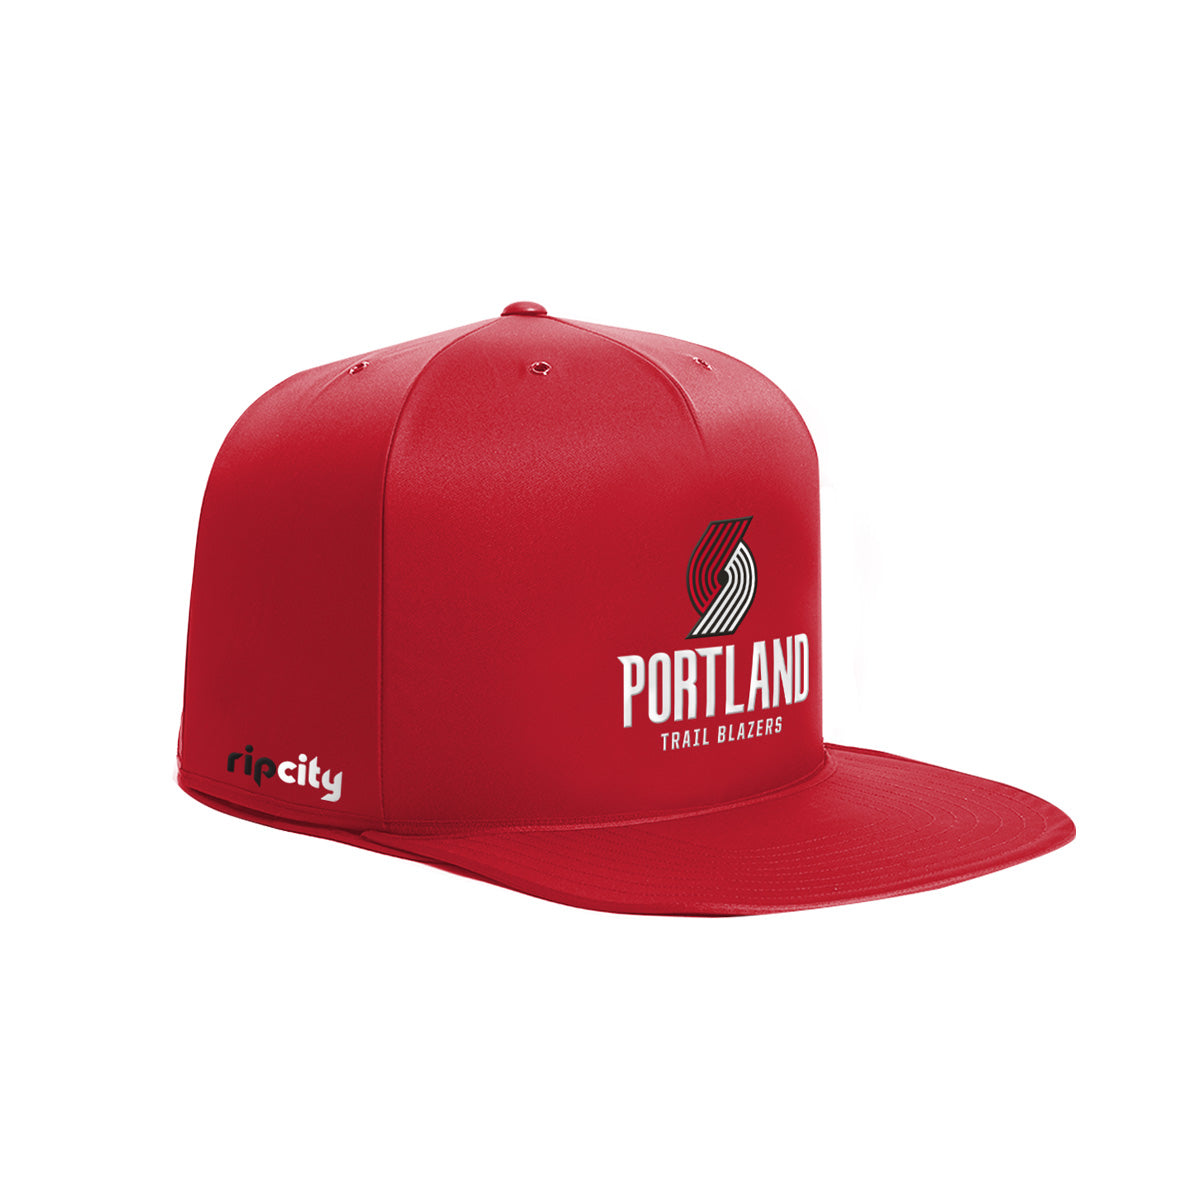 Nap Cap - NBA - Portland Trail Blazers - Pet Bed